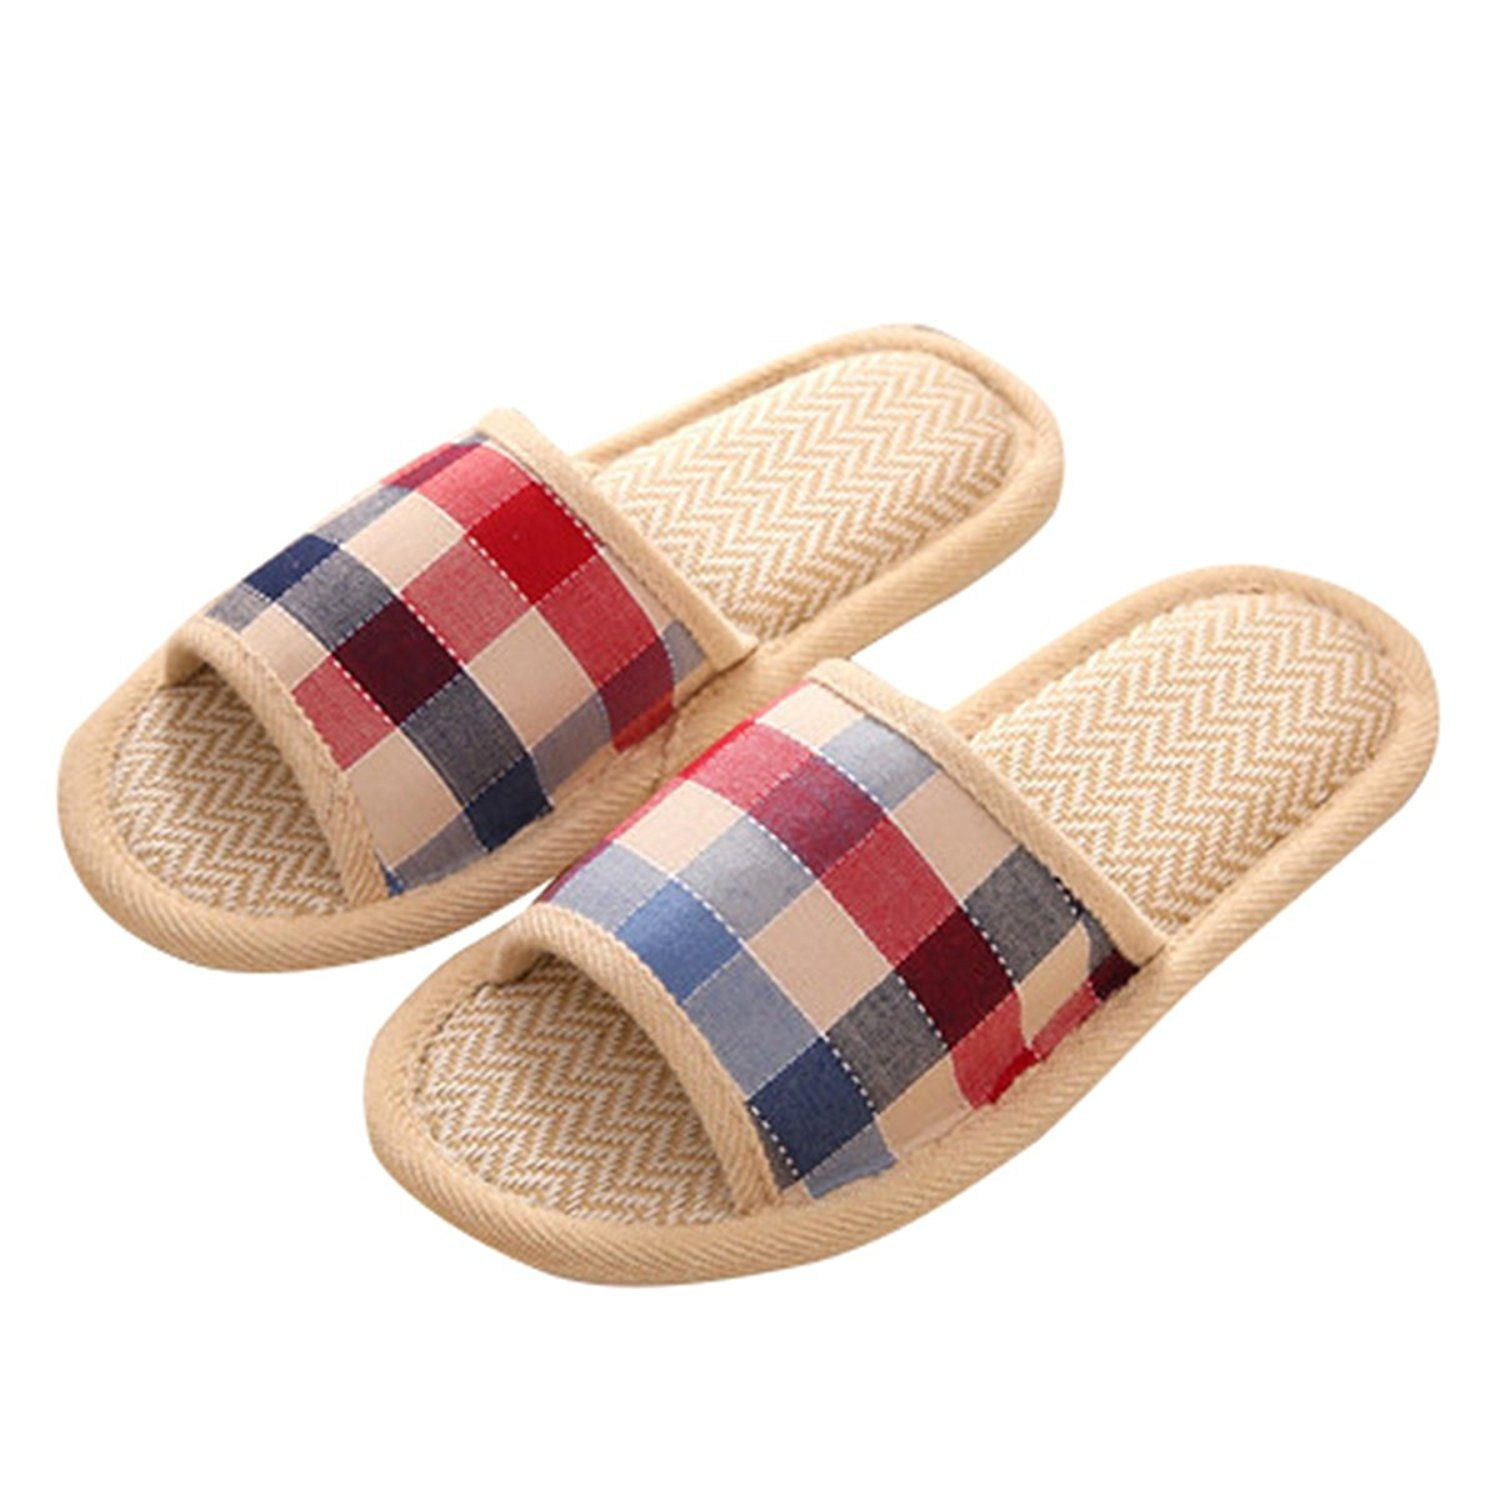 Sweet Indoor Shoes Cotton Linen Classic Grids House Open-Toes Slippers